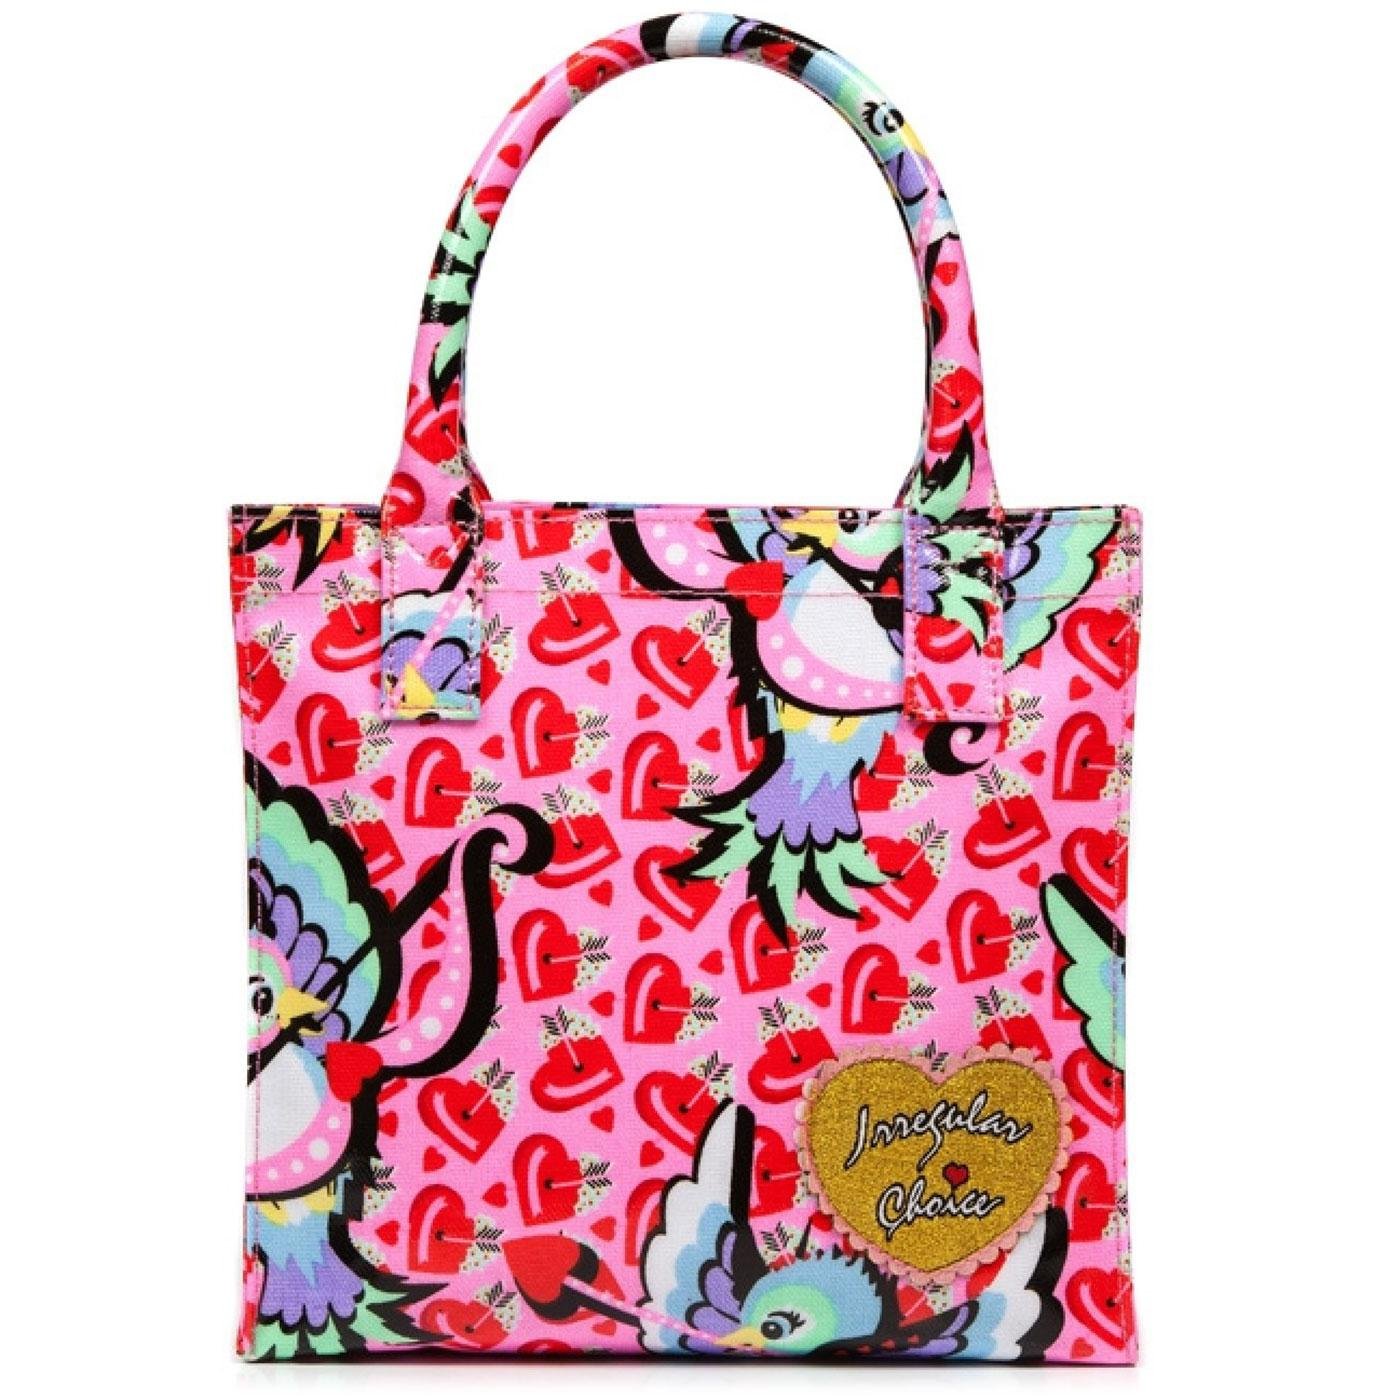 Magic Shopper IRREGULAR CHOICE Small Love Bird Bag